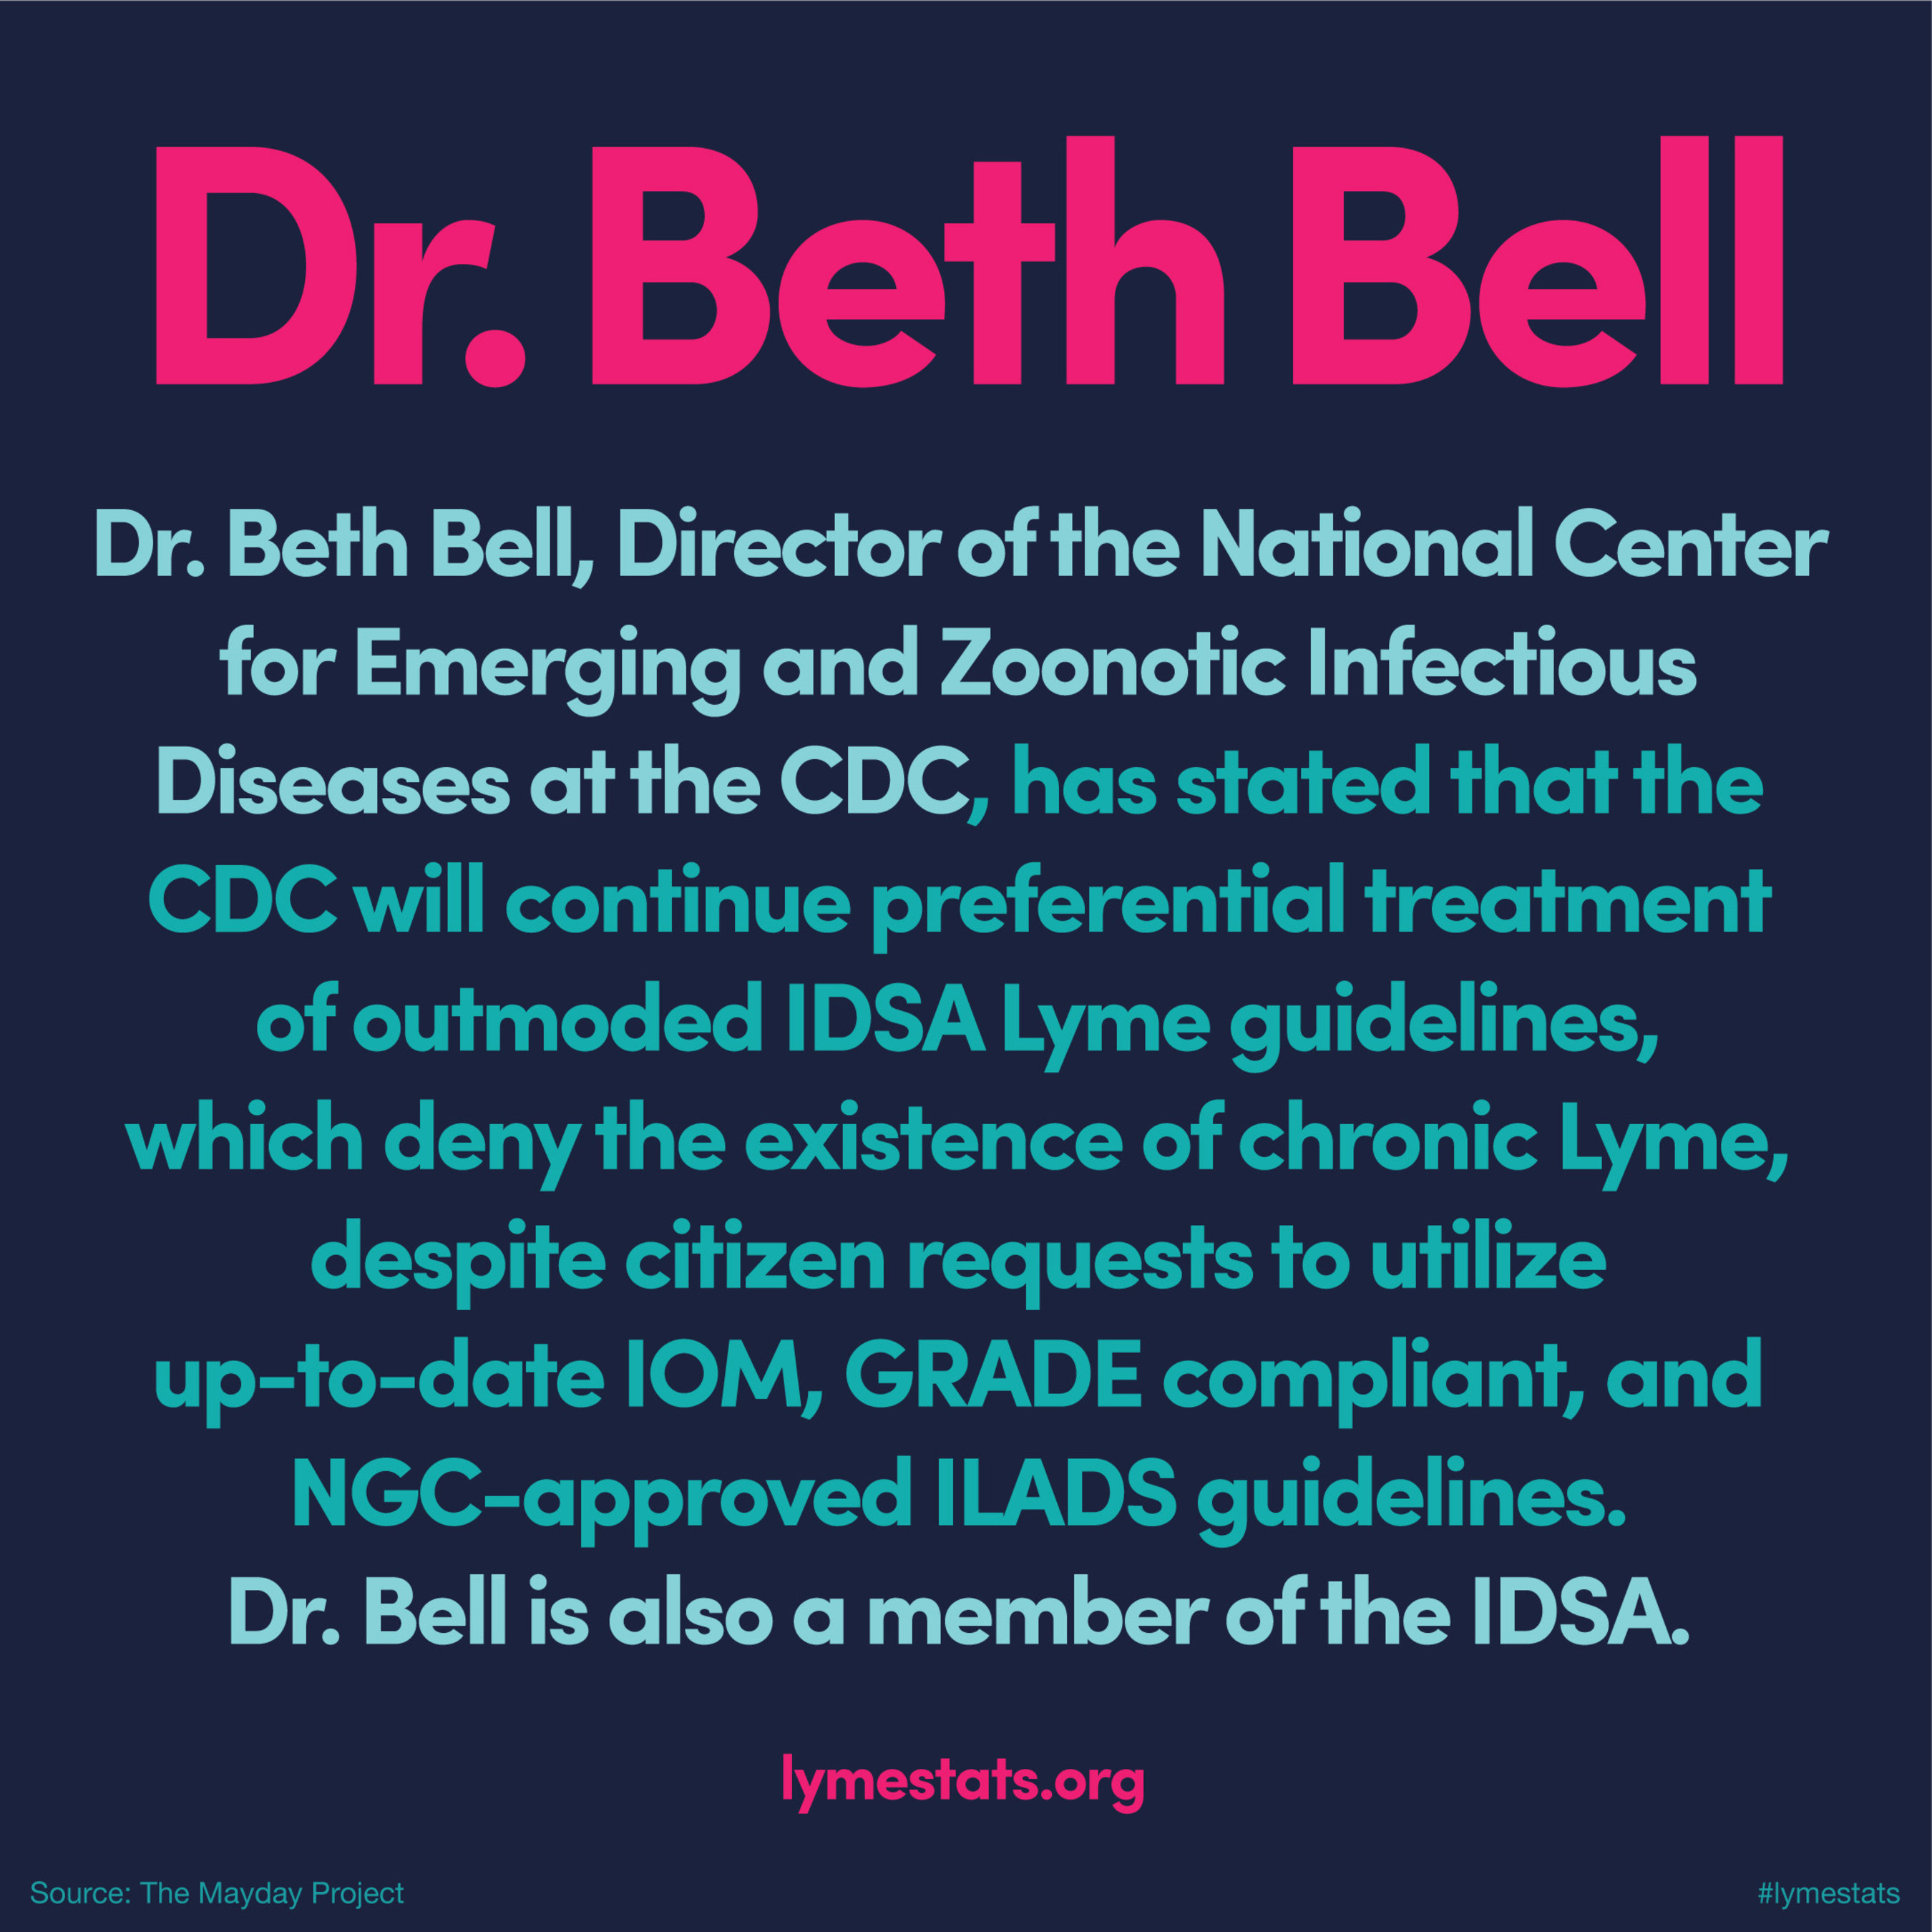 CDC Refuses to End Preferential Treatment of IDSA Lyme Guidelines in Response to Citizen Petition